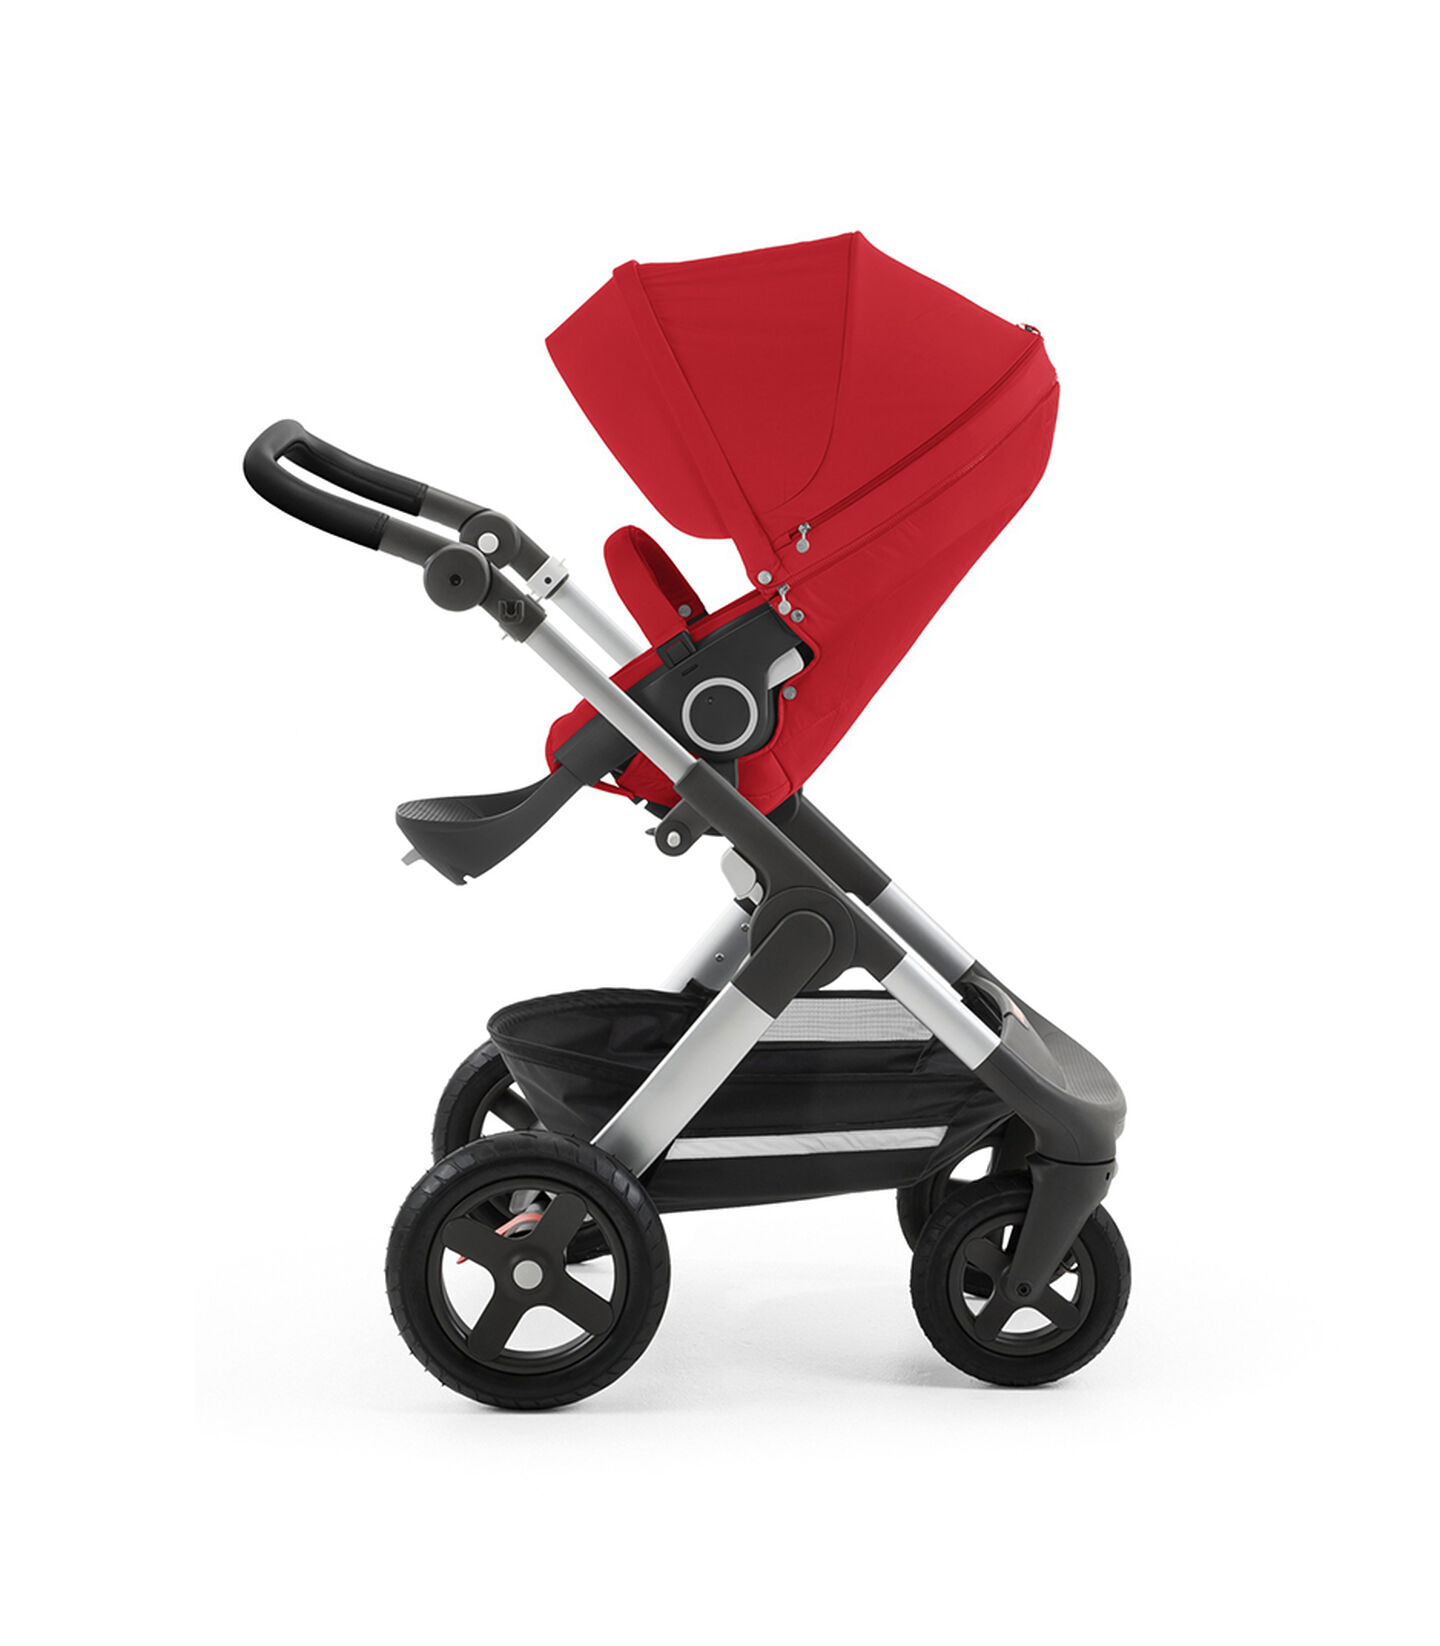 Stokke® Trailz™ Terrain Red, Red, mainview view 1